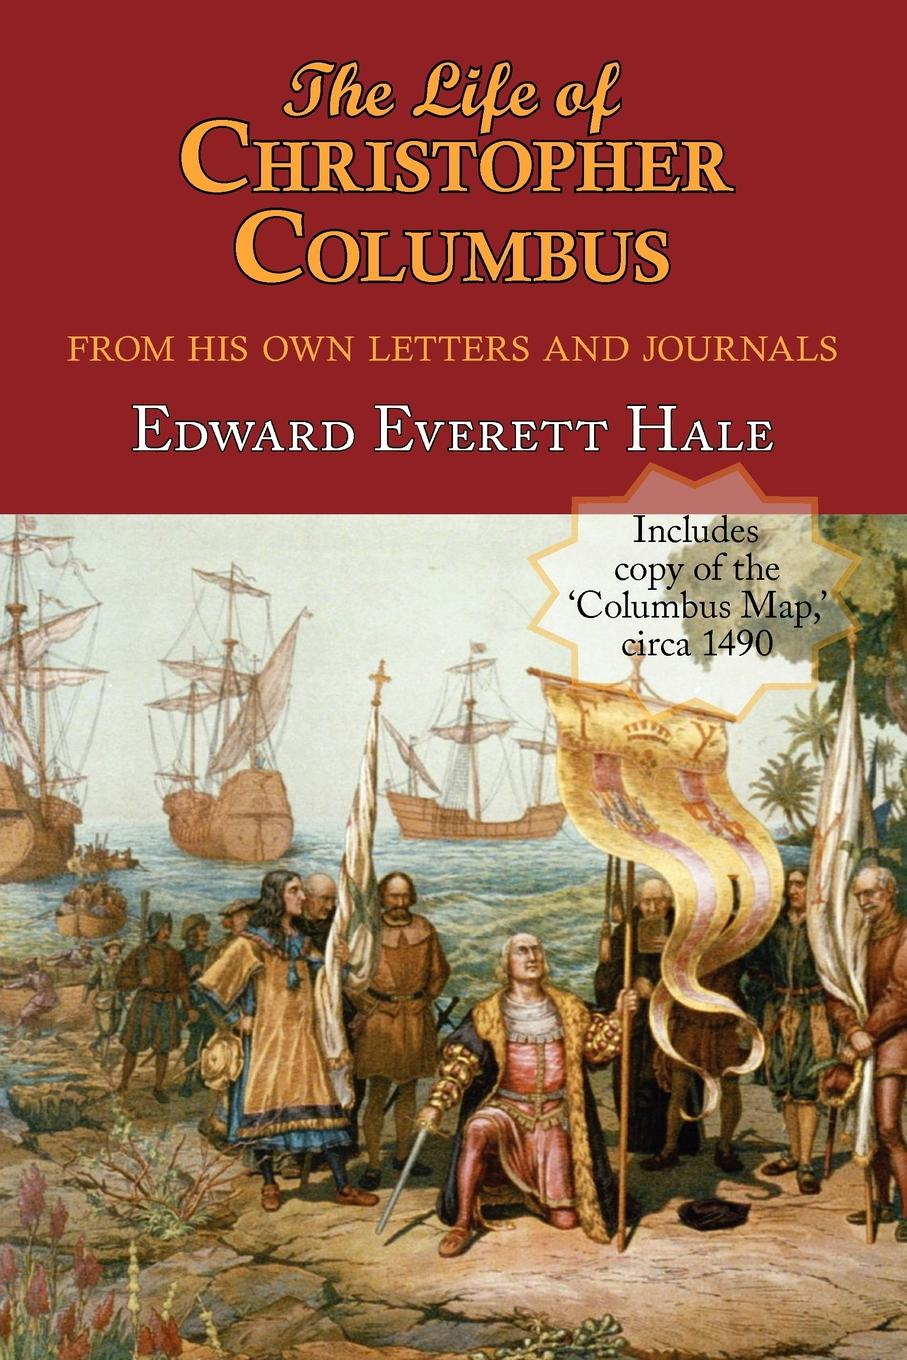 цена Edward Everett Hale The Life of Christopher Columbus. with Appendices and the Colombus Map, Drawn Circa 1490 in the Workshop of Bartolomeo and Christopher Columbus in Lis в интернет-магазинах